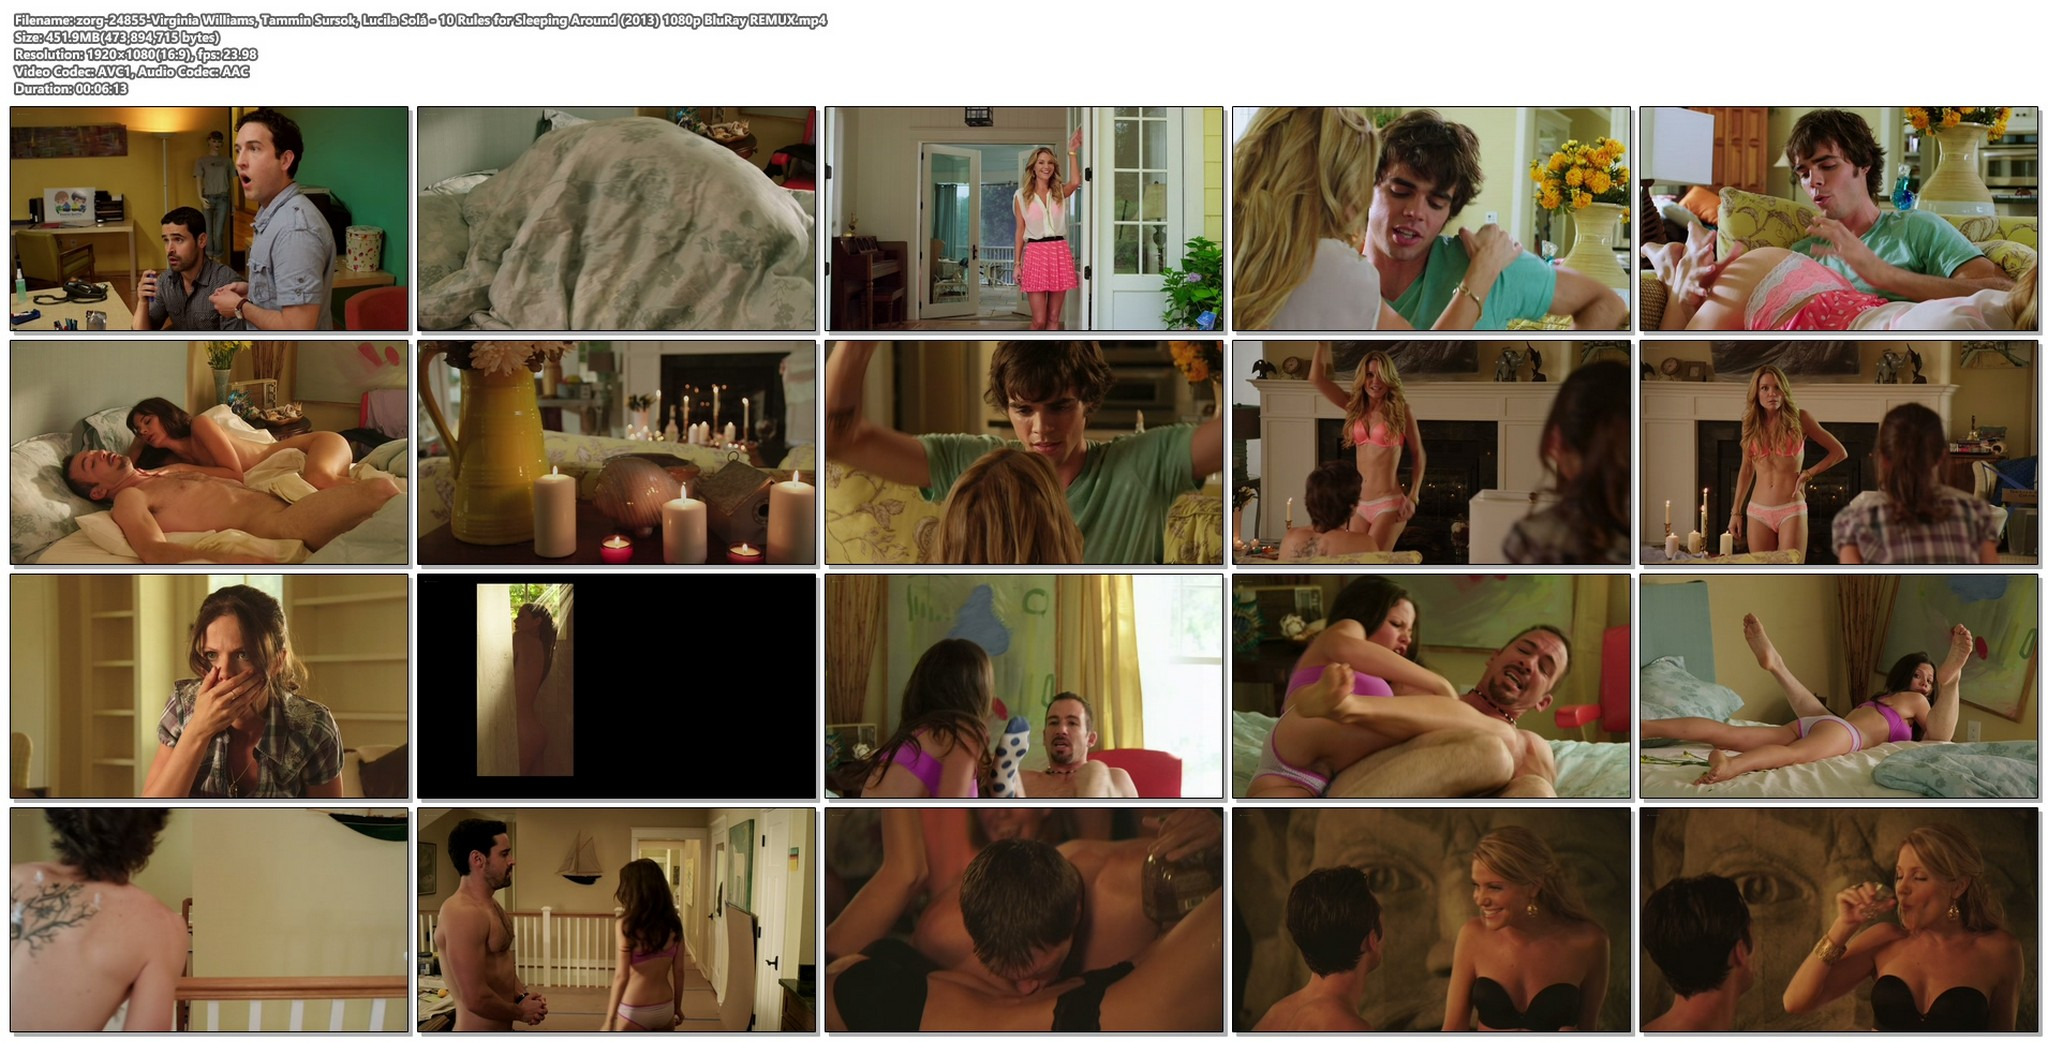 Virginia Williams hot Tammin Sursok Lucila Sola and others nude and sexy 10 Rules for Sleeping Around 2013 1080p BluRay REMUX 20